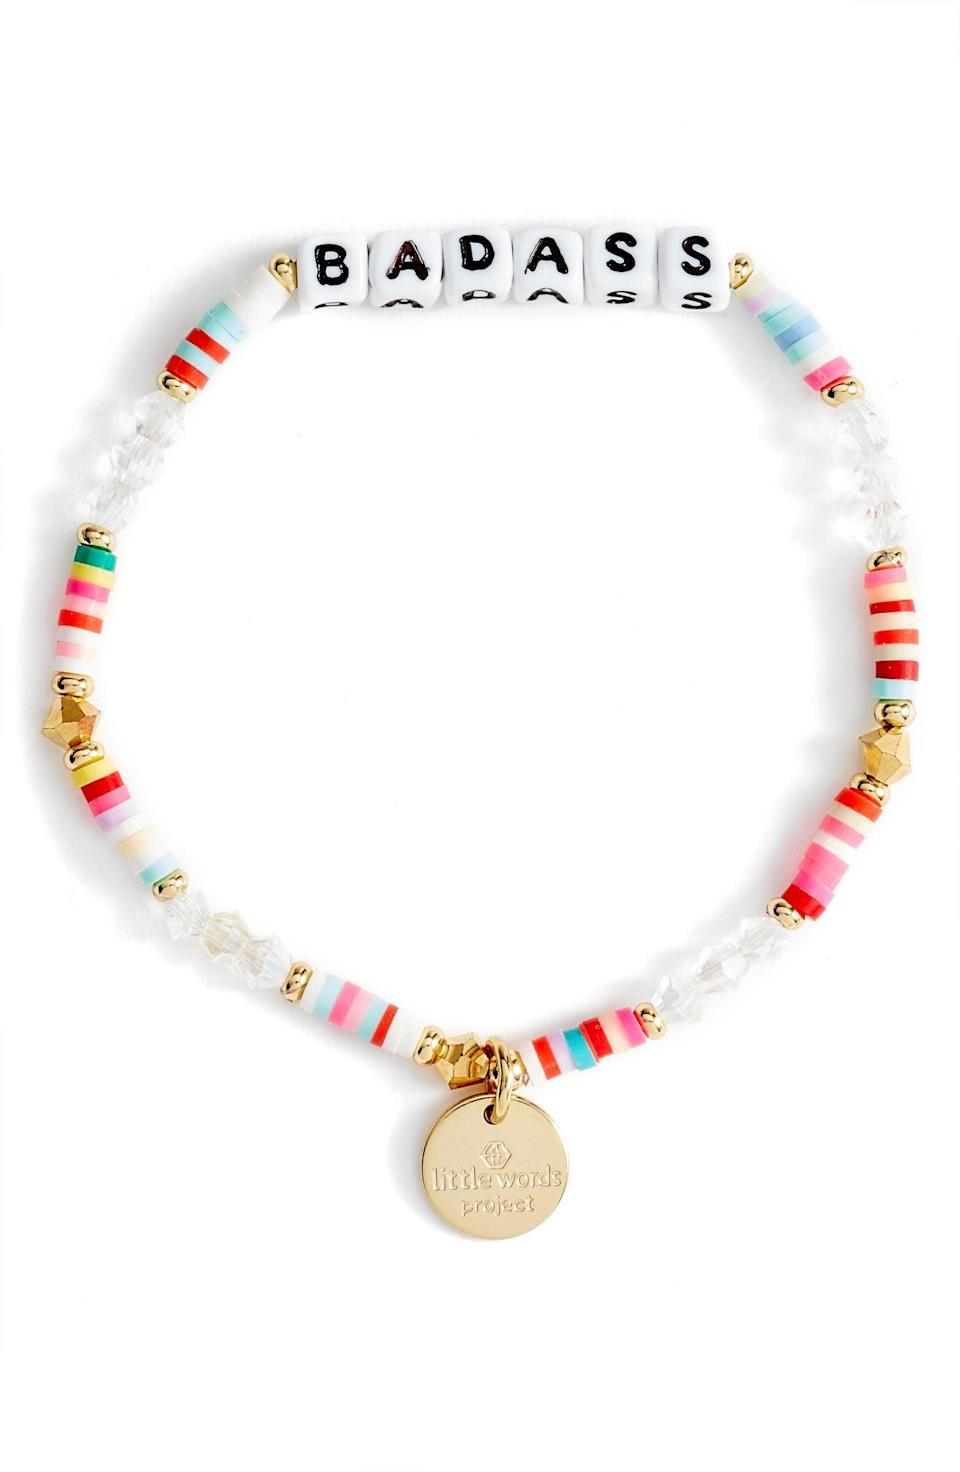 <p>Gift this <span>Little Words Project Badass Beaded Stretch Bracelet</span> ($20) to the badass in your life. It'll be a constant reminder that they can do anything.</p>